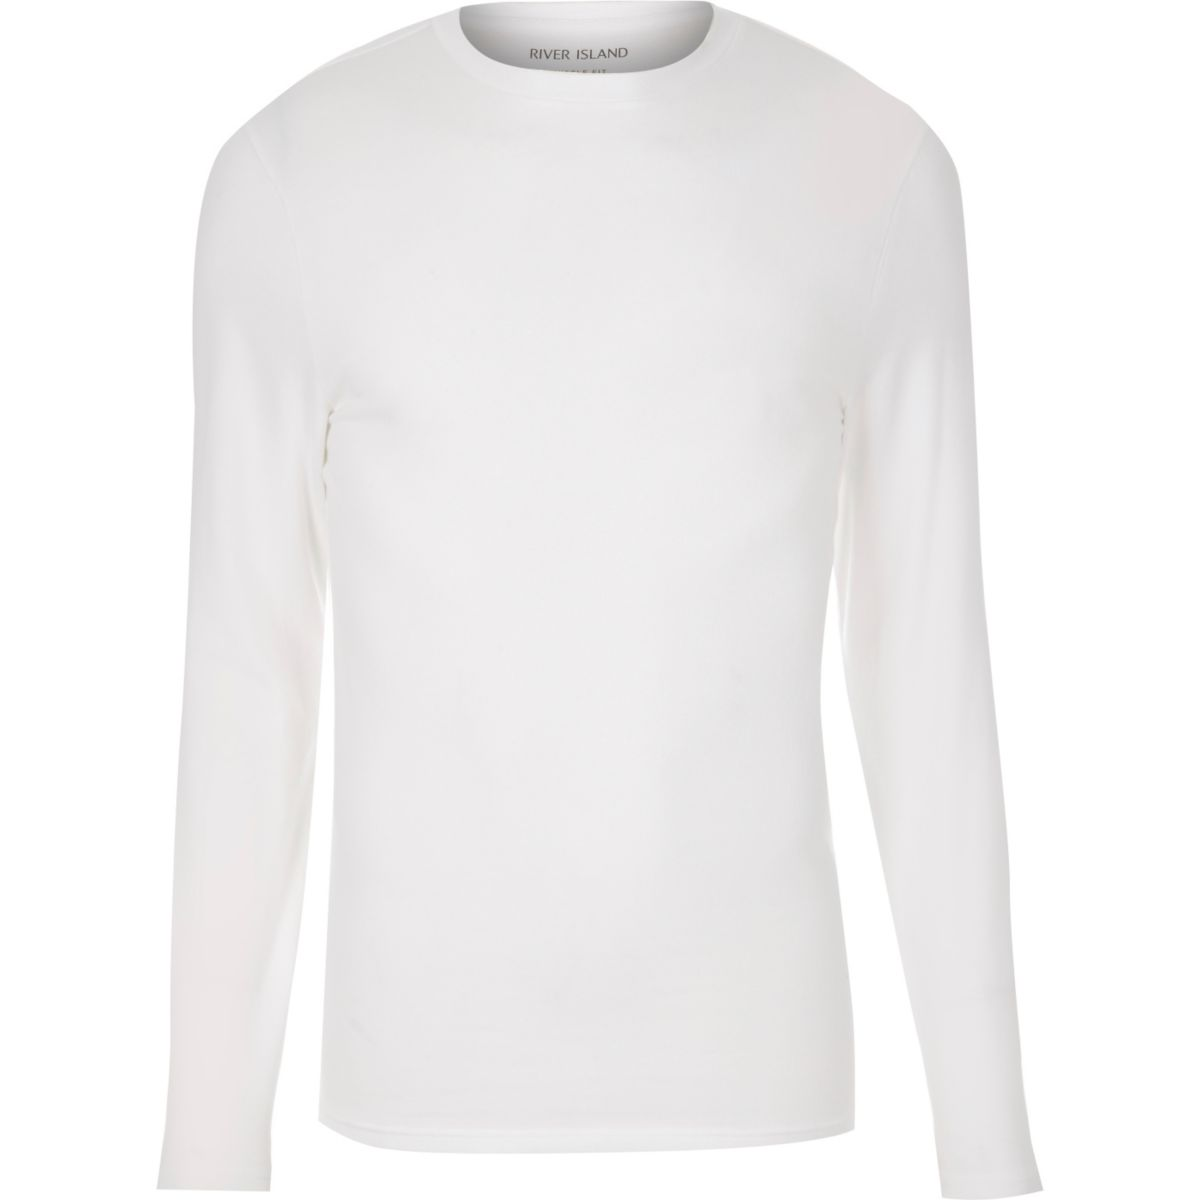 White muscle fit long sleeve t shirt t shirts vests for Mens long sleeve white t shirt